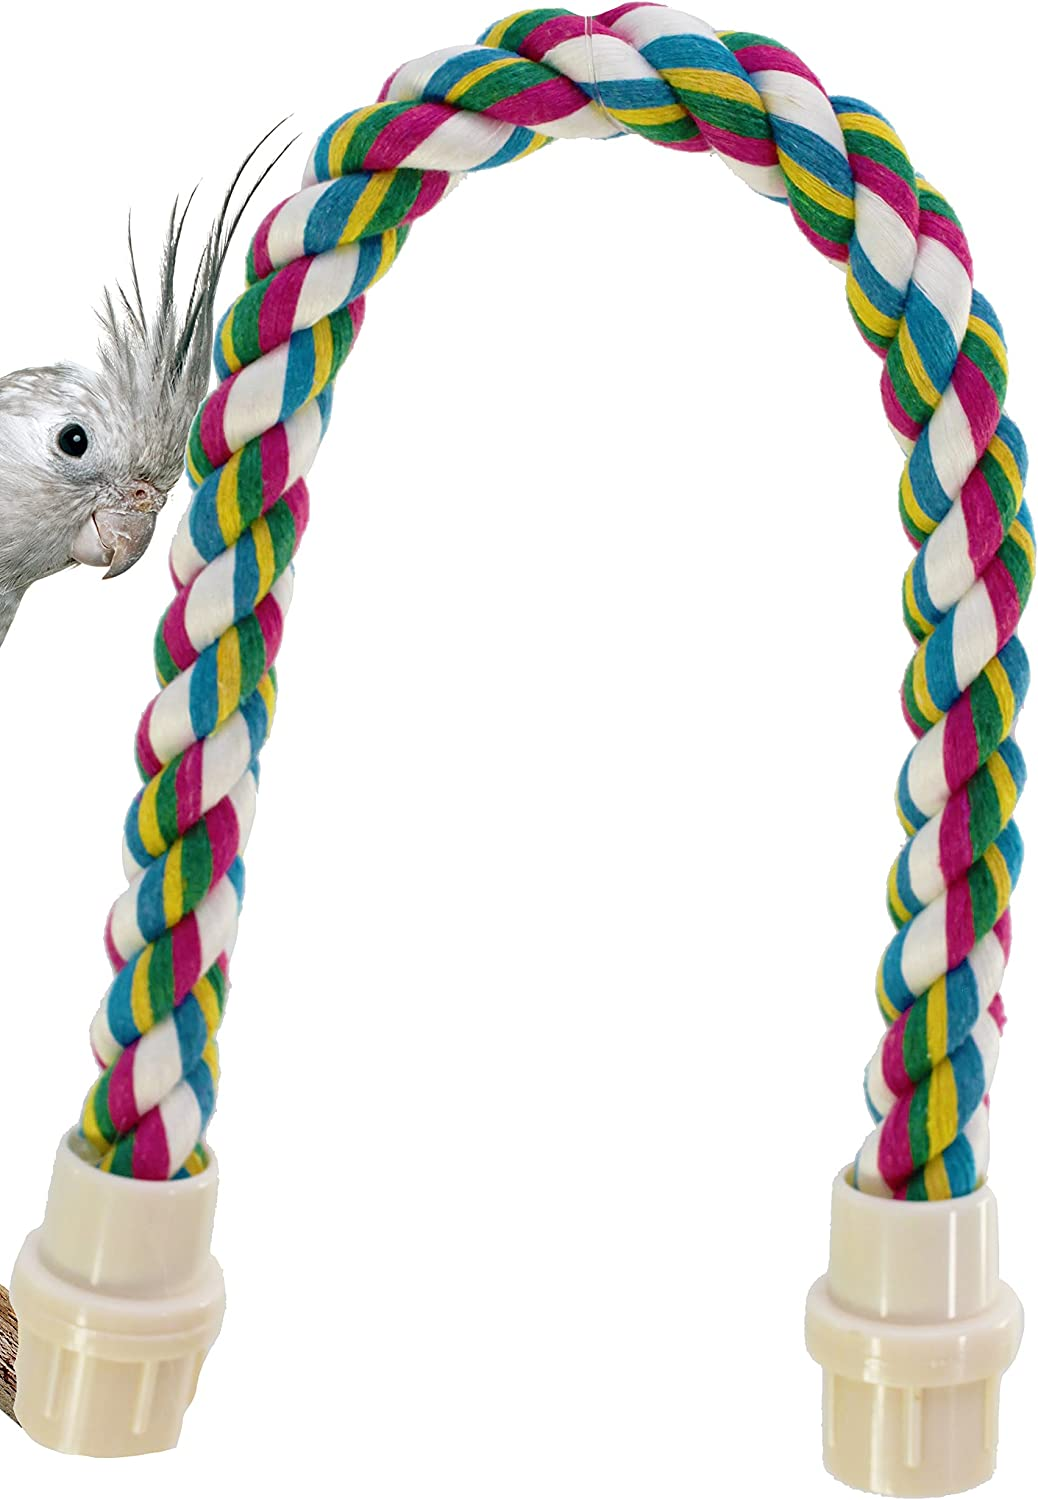 1674 20inch Parred Rope Perch Bird Toy Toys cage Budgie Conure Cockatiel Amazons